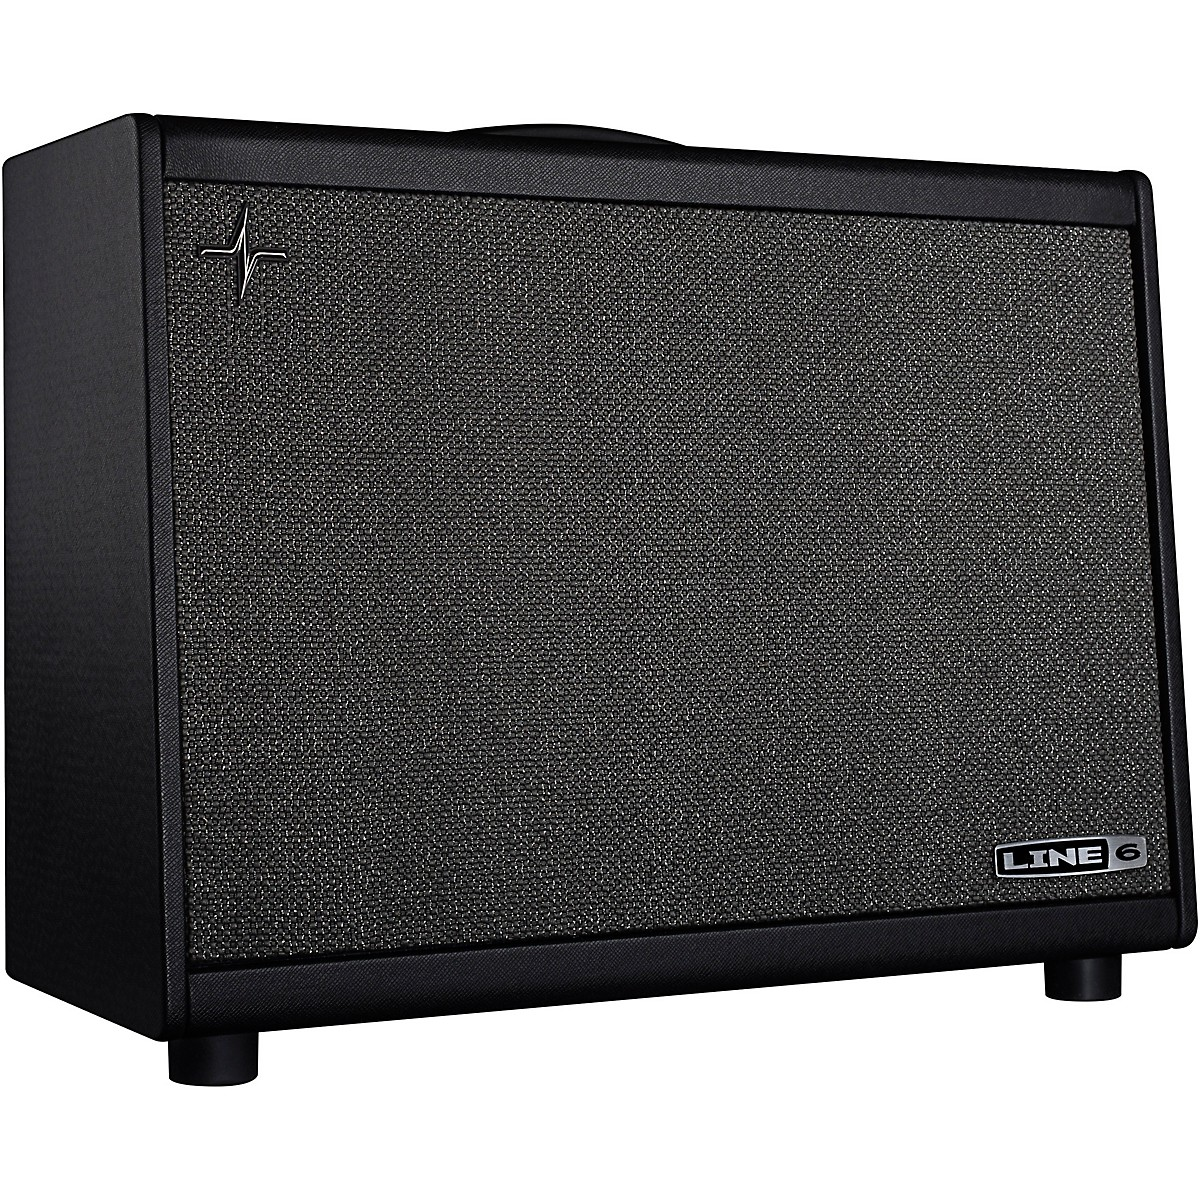 Line 6 Powercab 112 Plus 250W 1x12 FRFR Powered Speaker Cab